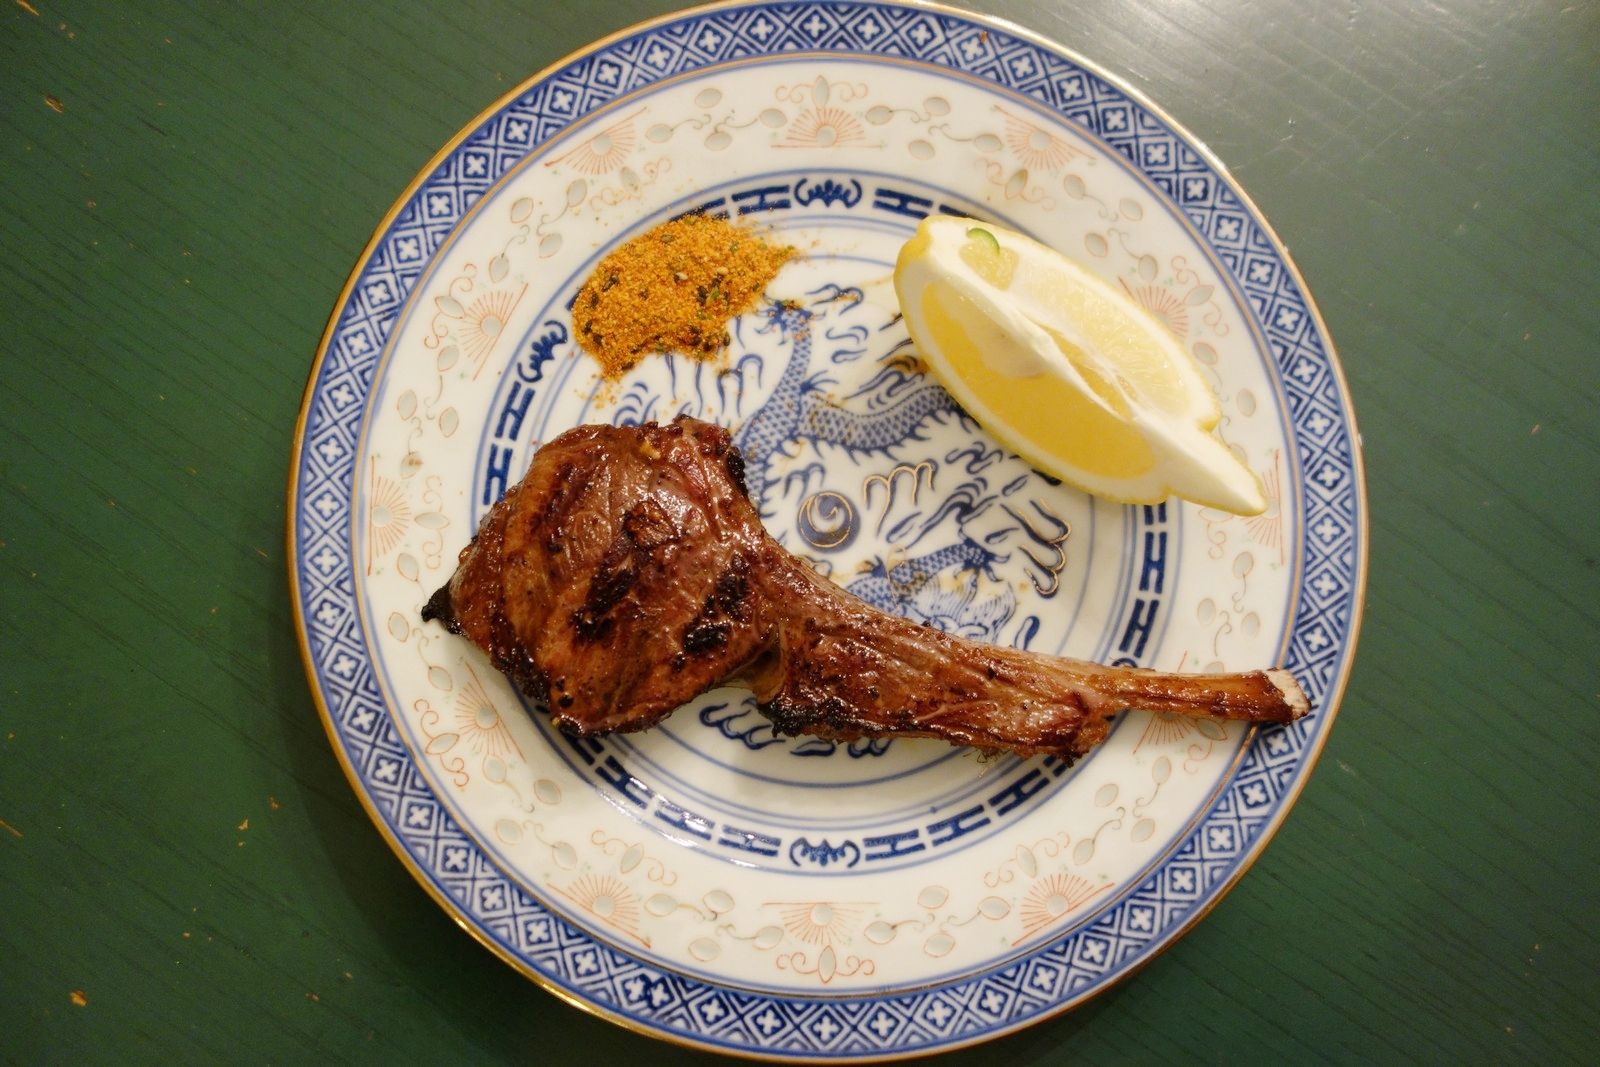 Marinated lamb chops served with a slice of lemon and Togarashi spice. Delicious!